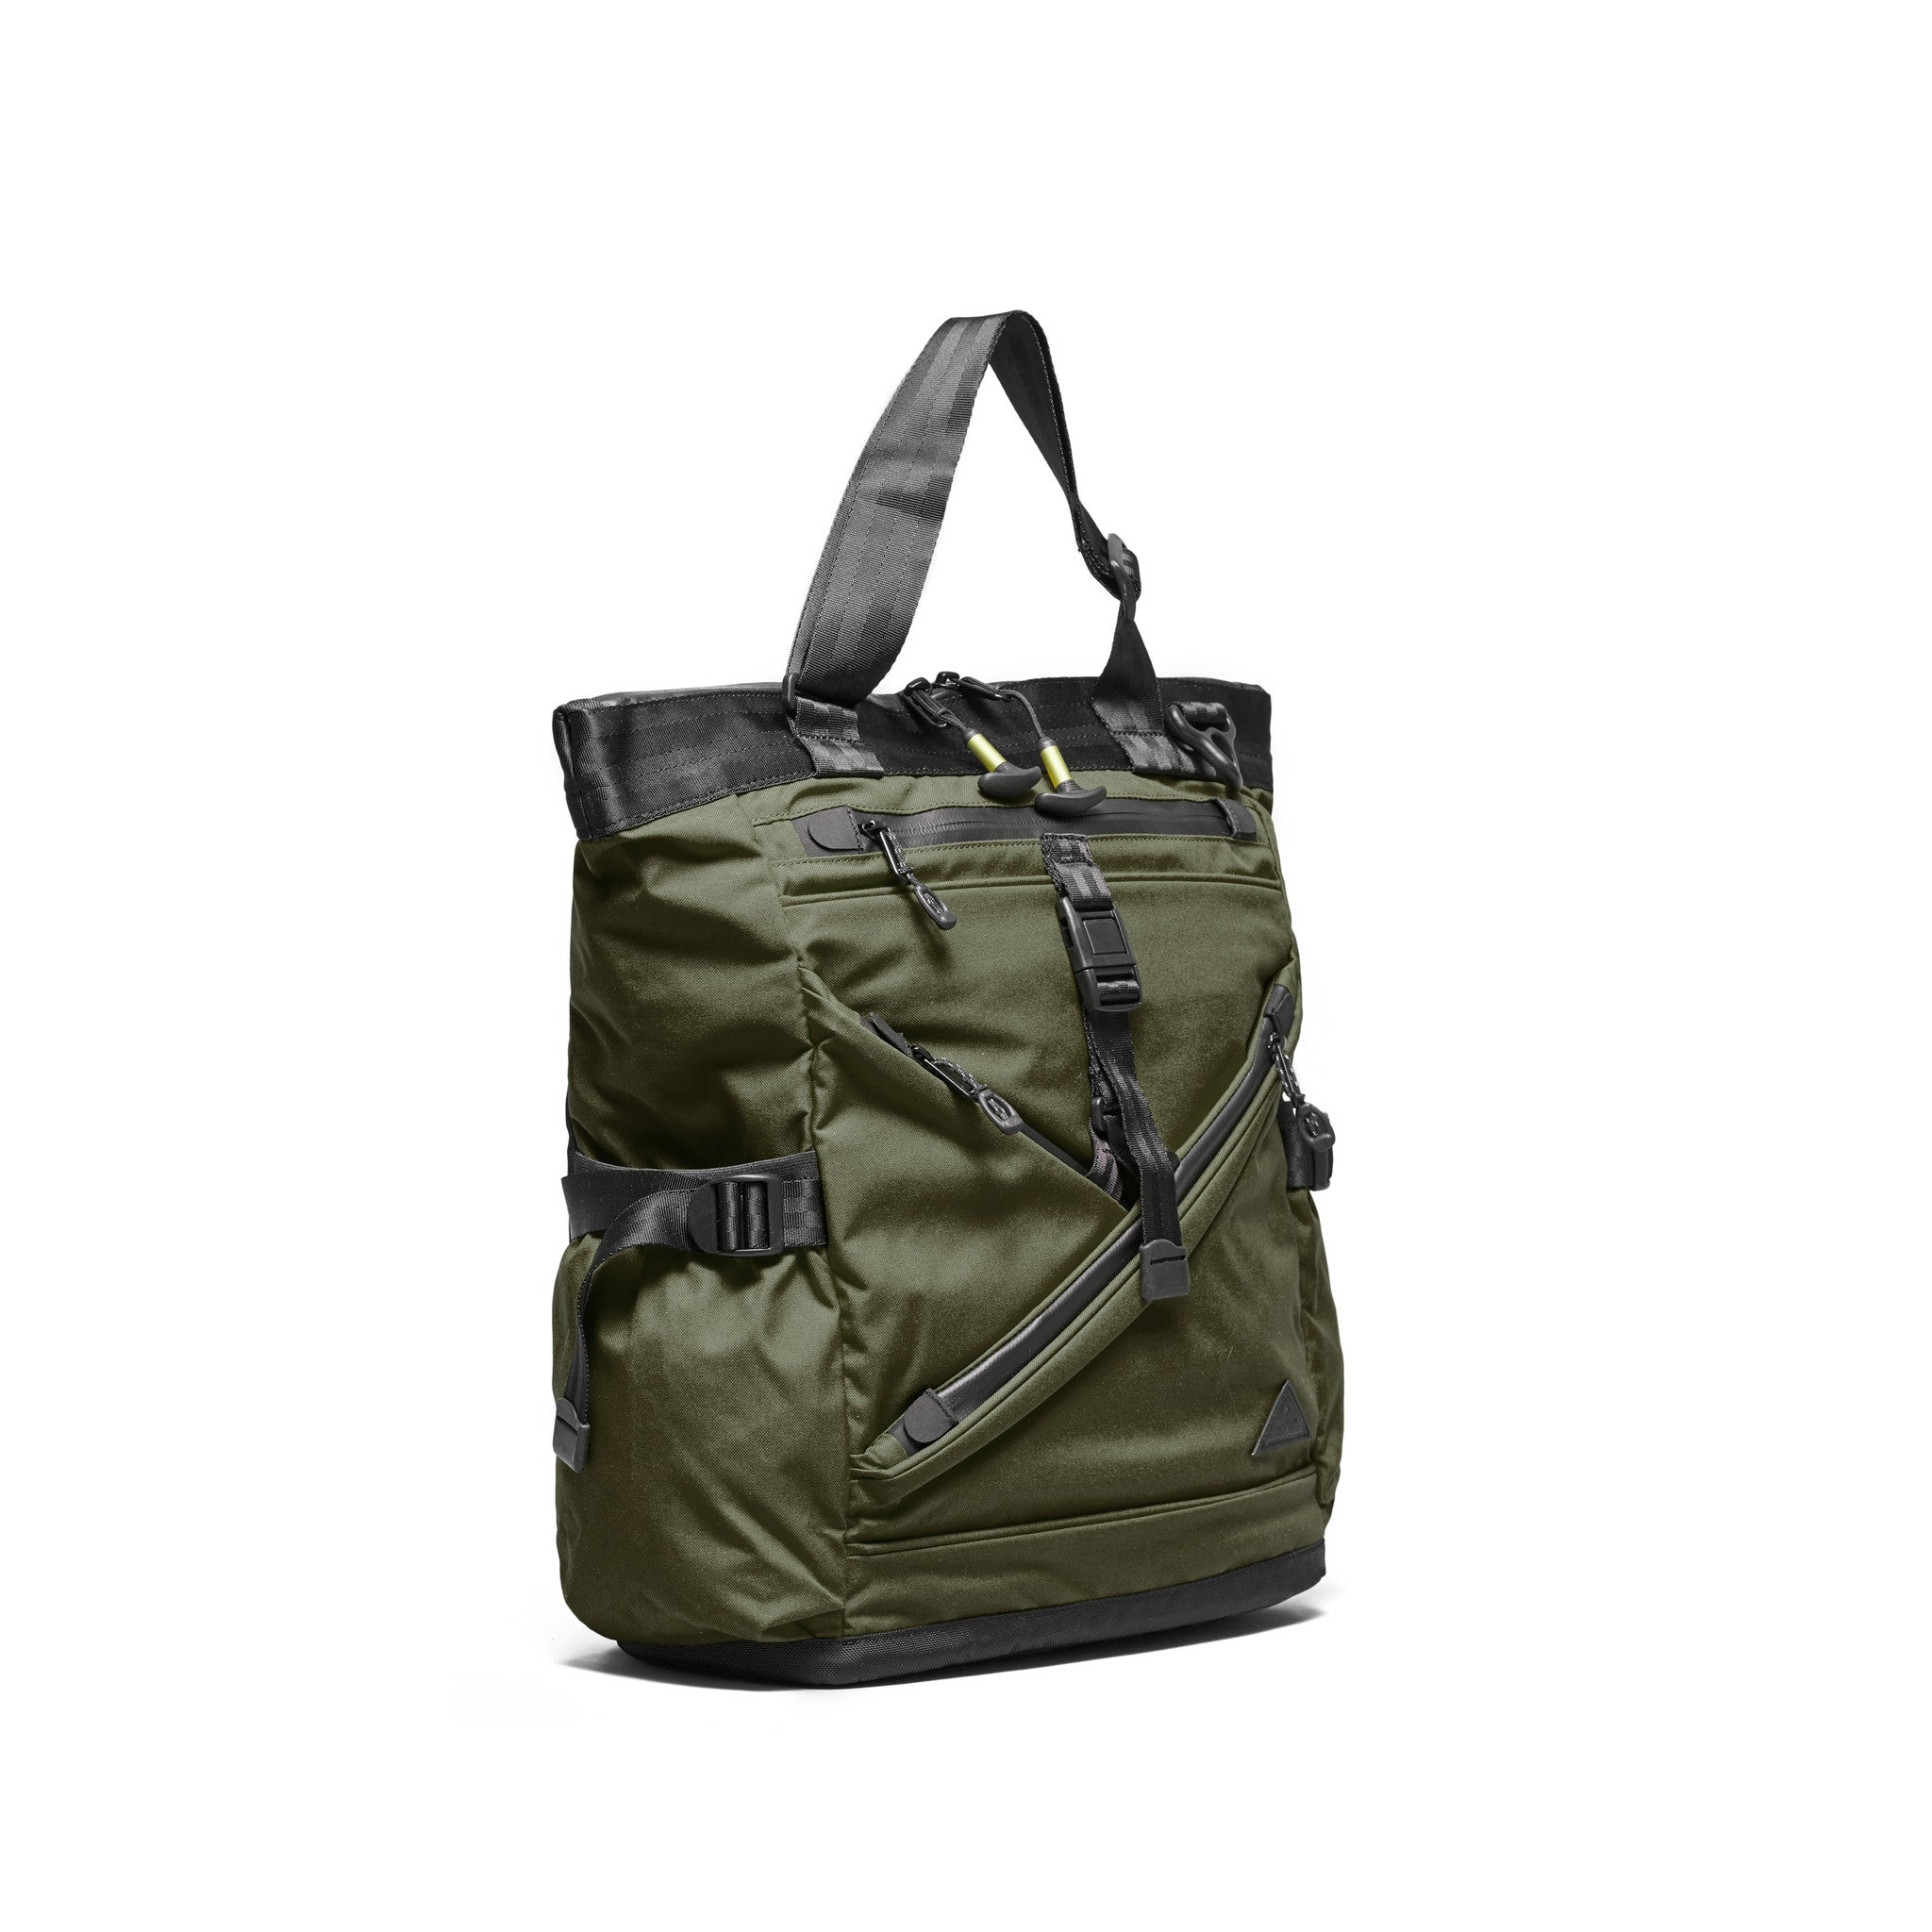 Trecknos Town Tote - Forest Green